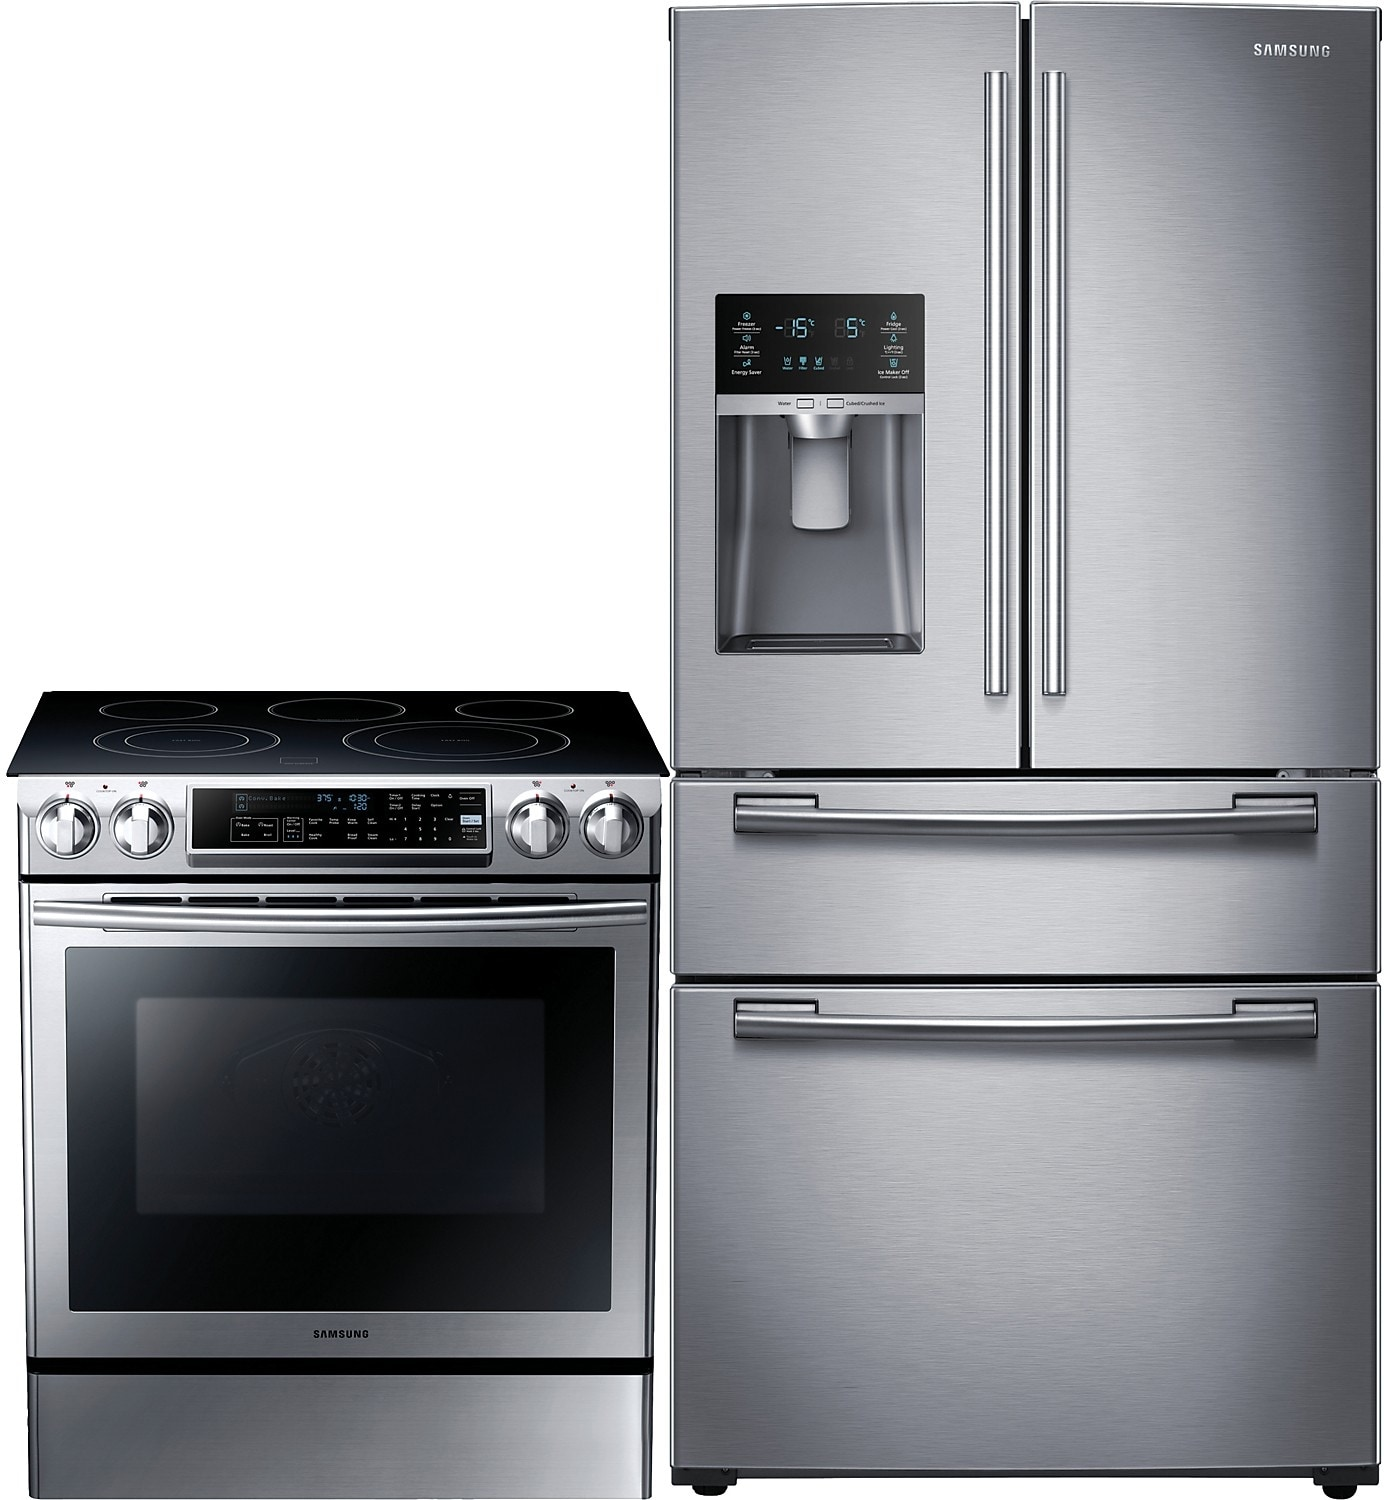 Samsung 5 8 cu ft slide in electric range stainless for What is the bottom drawer of an oven for